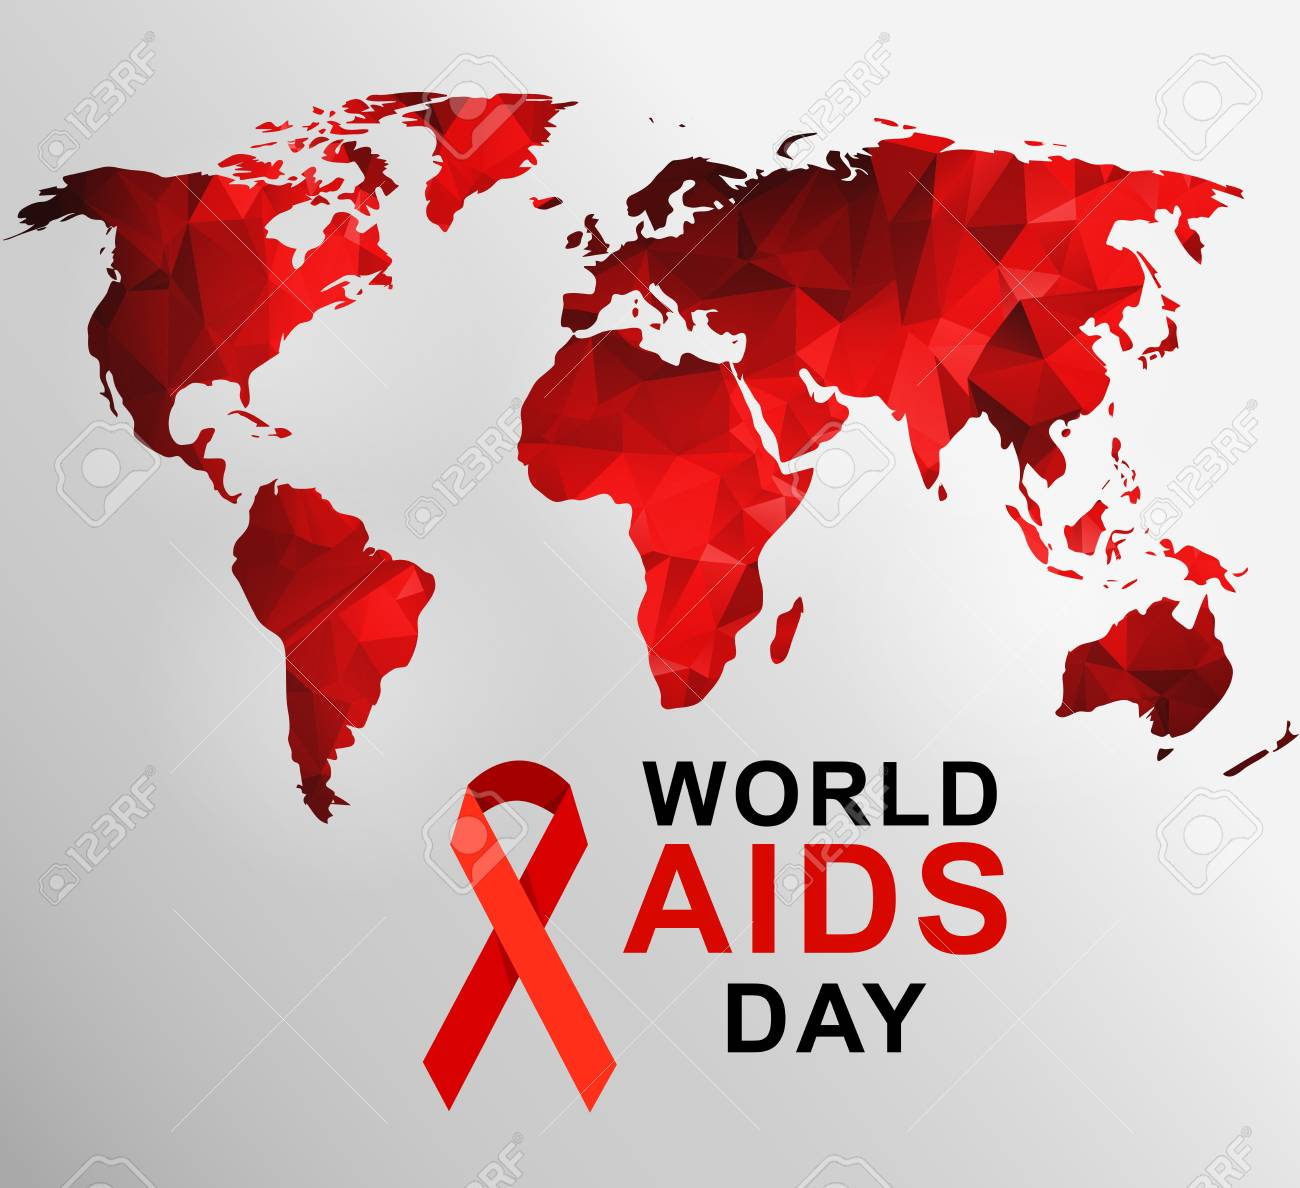 World aids day 1st december world aids day poster with with vector world aids day 1st december world aids day poster with with red polygonal world map vector illustration gumiabroncs Choice Image